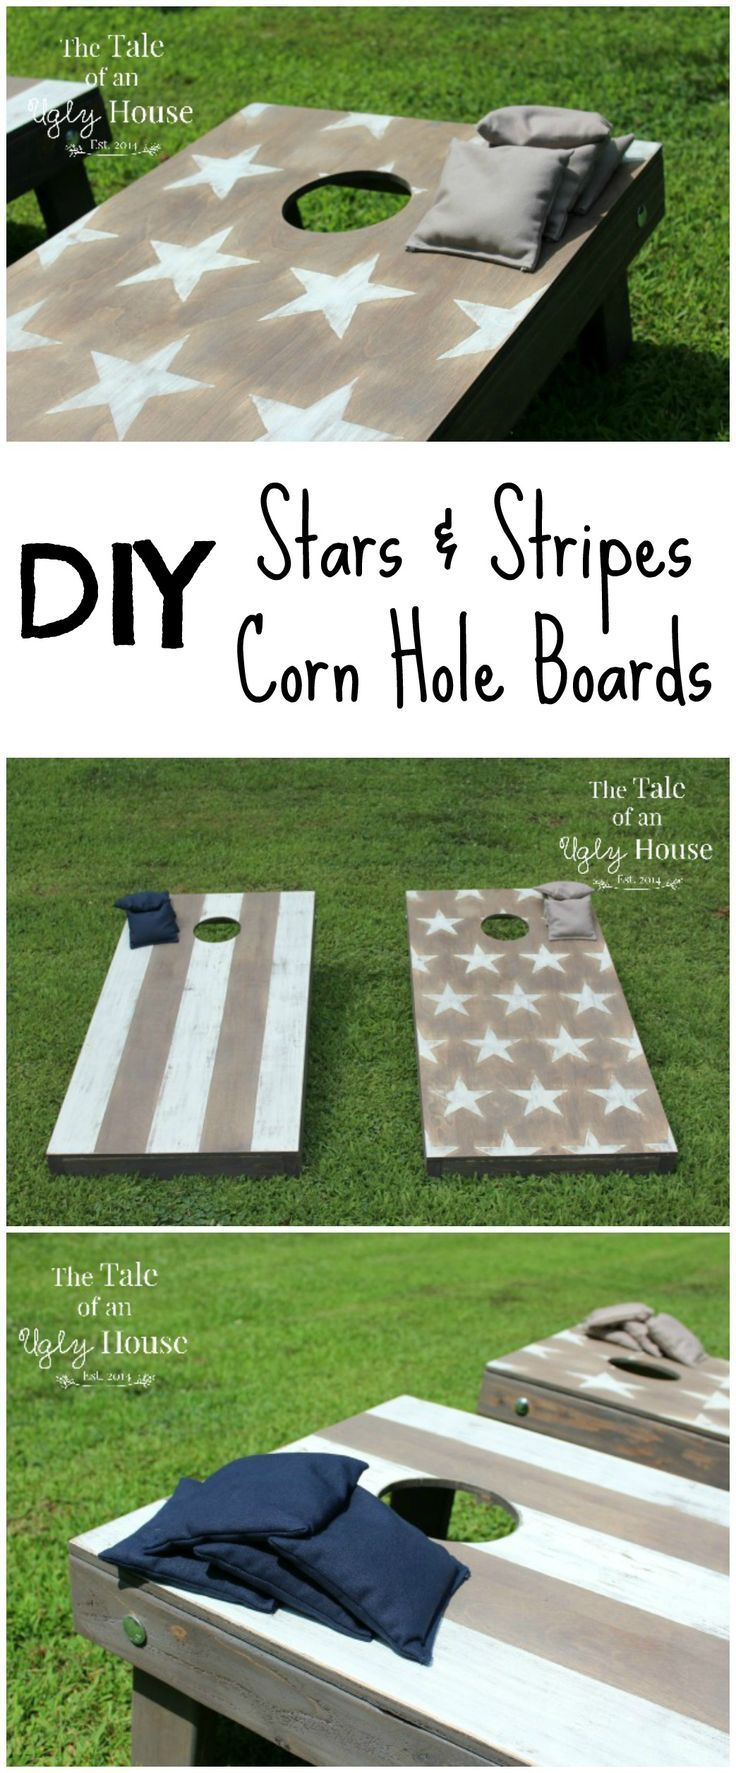 stars stripes corn hole boards - Cornhole Design Ideas